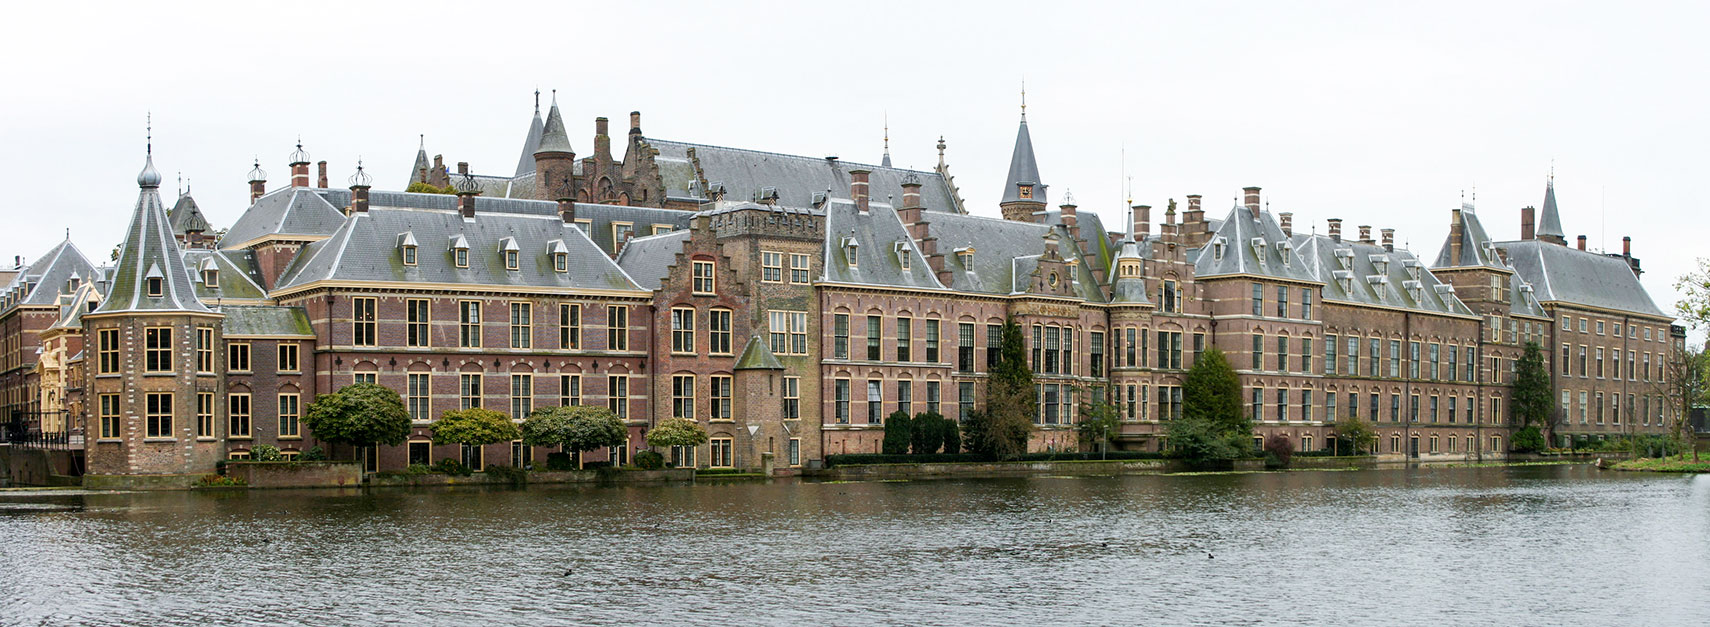 Google Map of the City of Den Haag Netherlands Nations Online Project